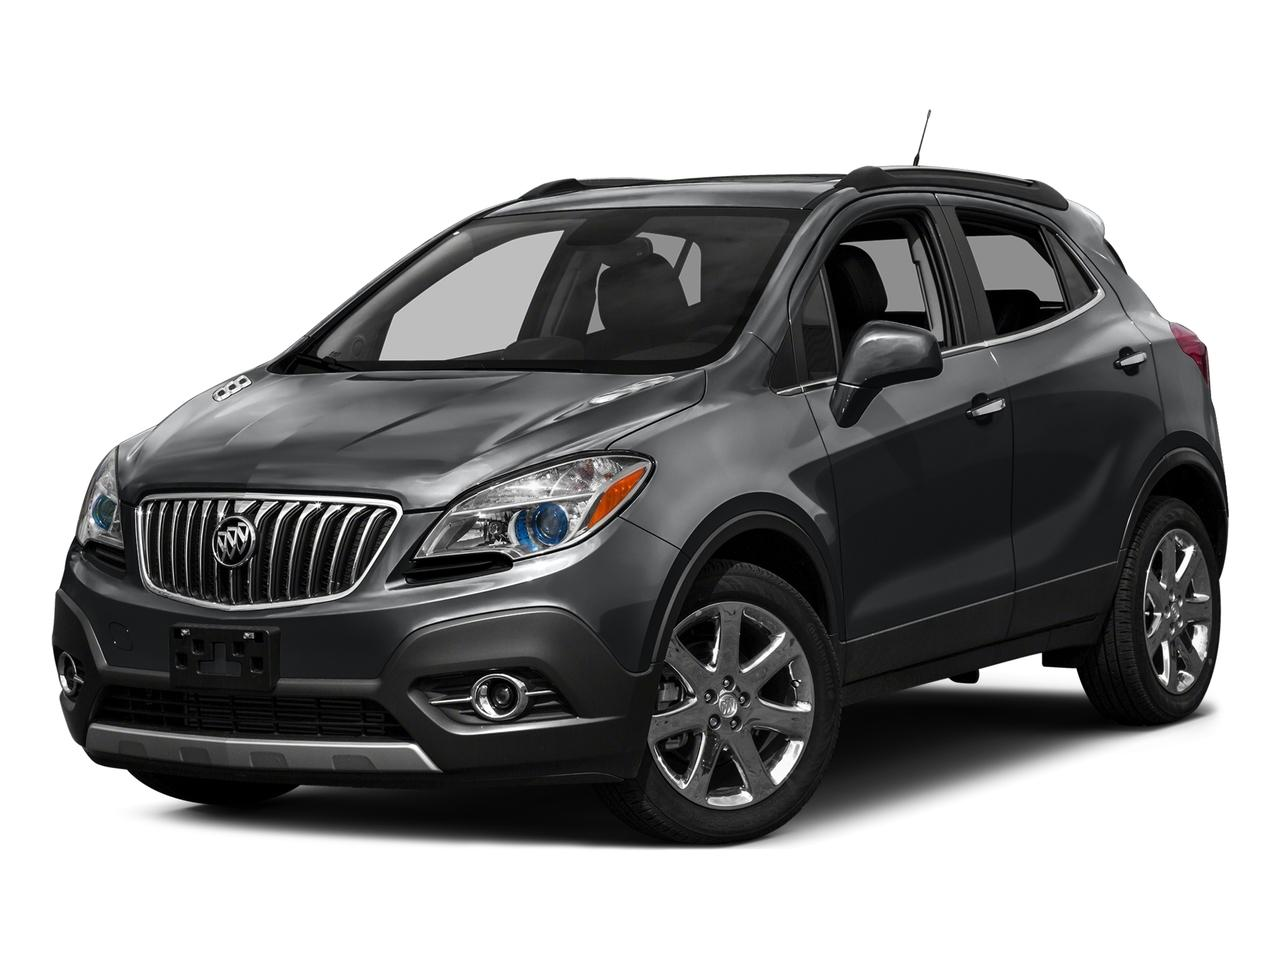 2016 Buick Encore Vehicle Photo in Rosenberg, TX 77471